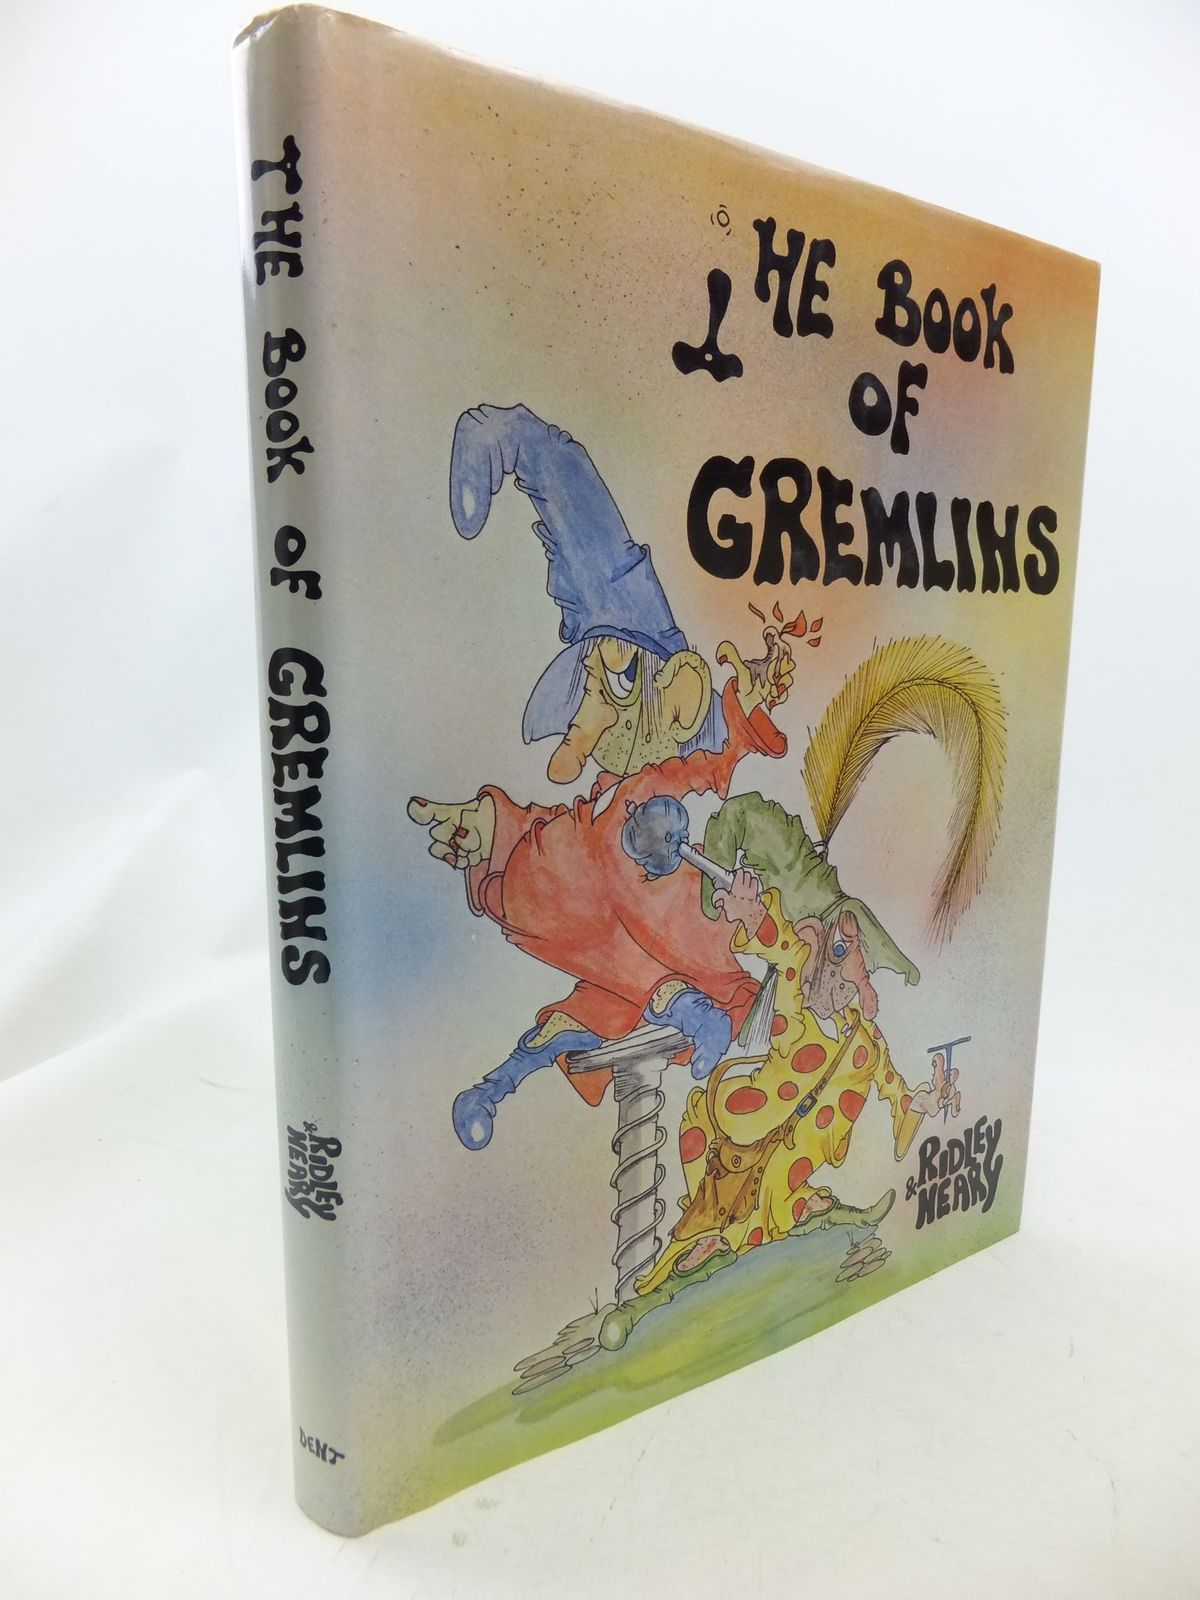 Photo of THE BOOK OF GREMLINS written by Ridley, Michael illustrated by Neary, Bryan published by J.M. Dent & Sons Ltd. (STOCK CODE: 2114485)  for sale by Stella & Rose's Books